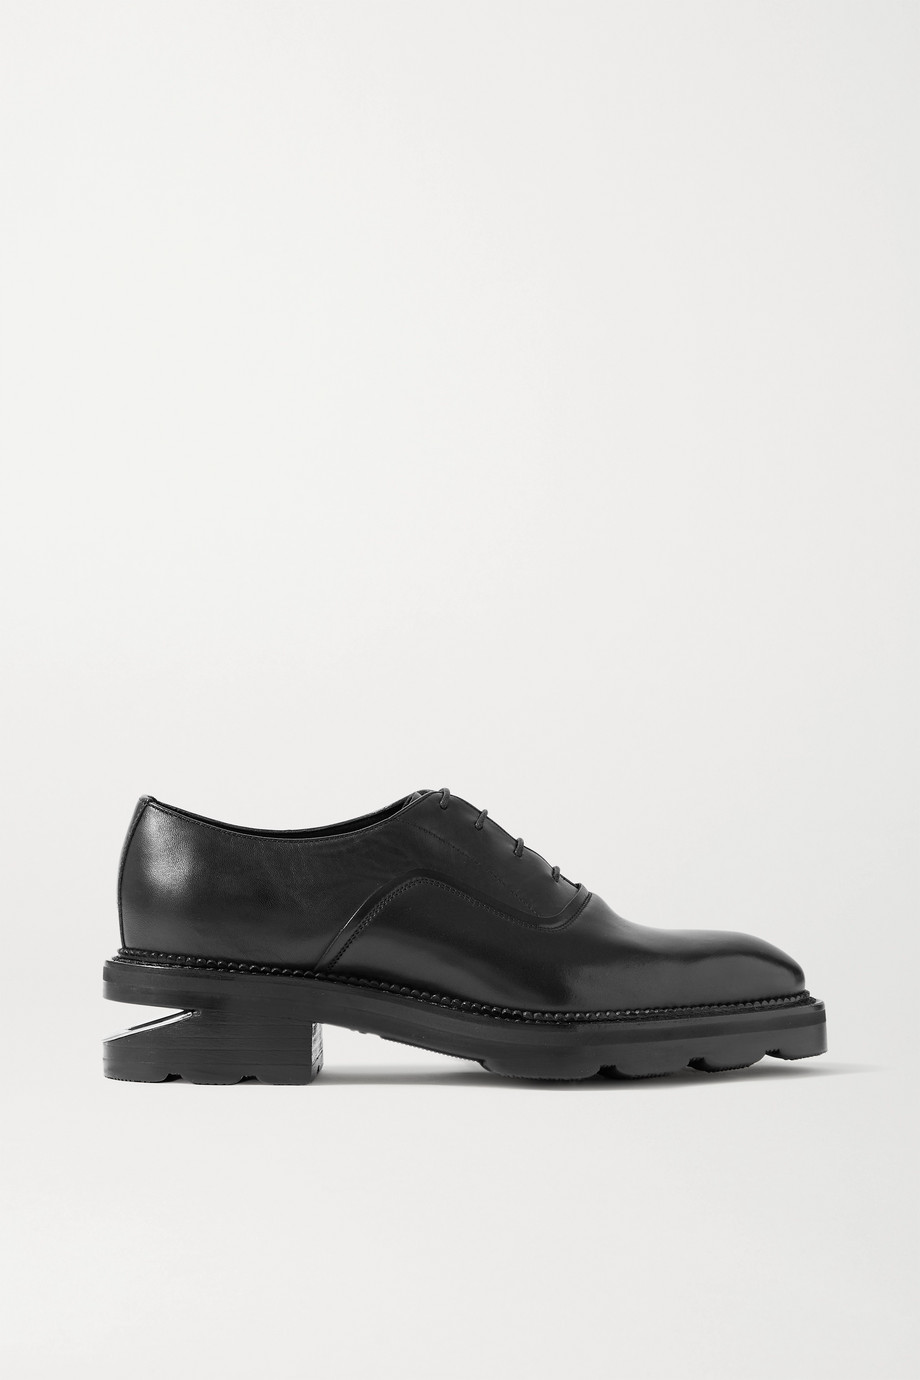 Alexander Wang Andy leather brogues